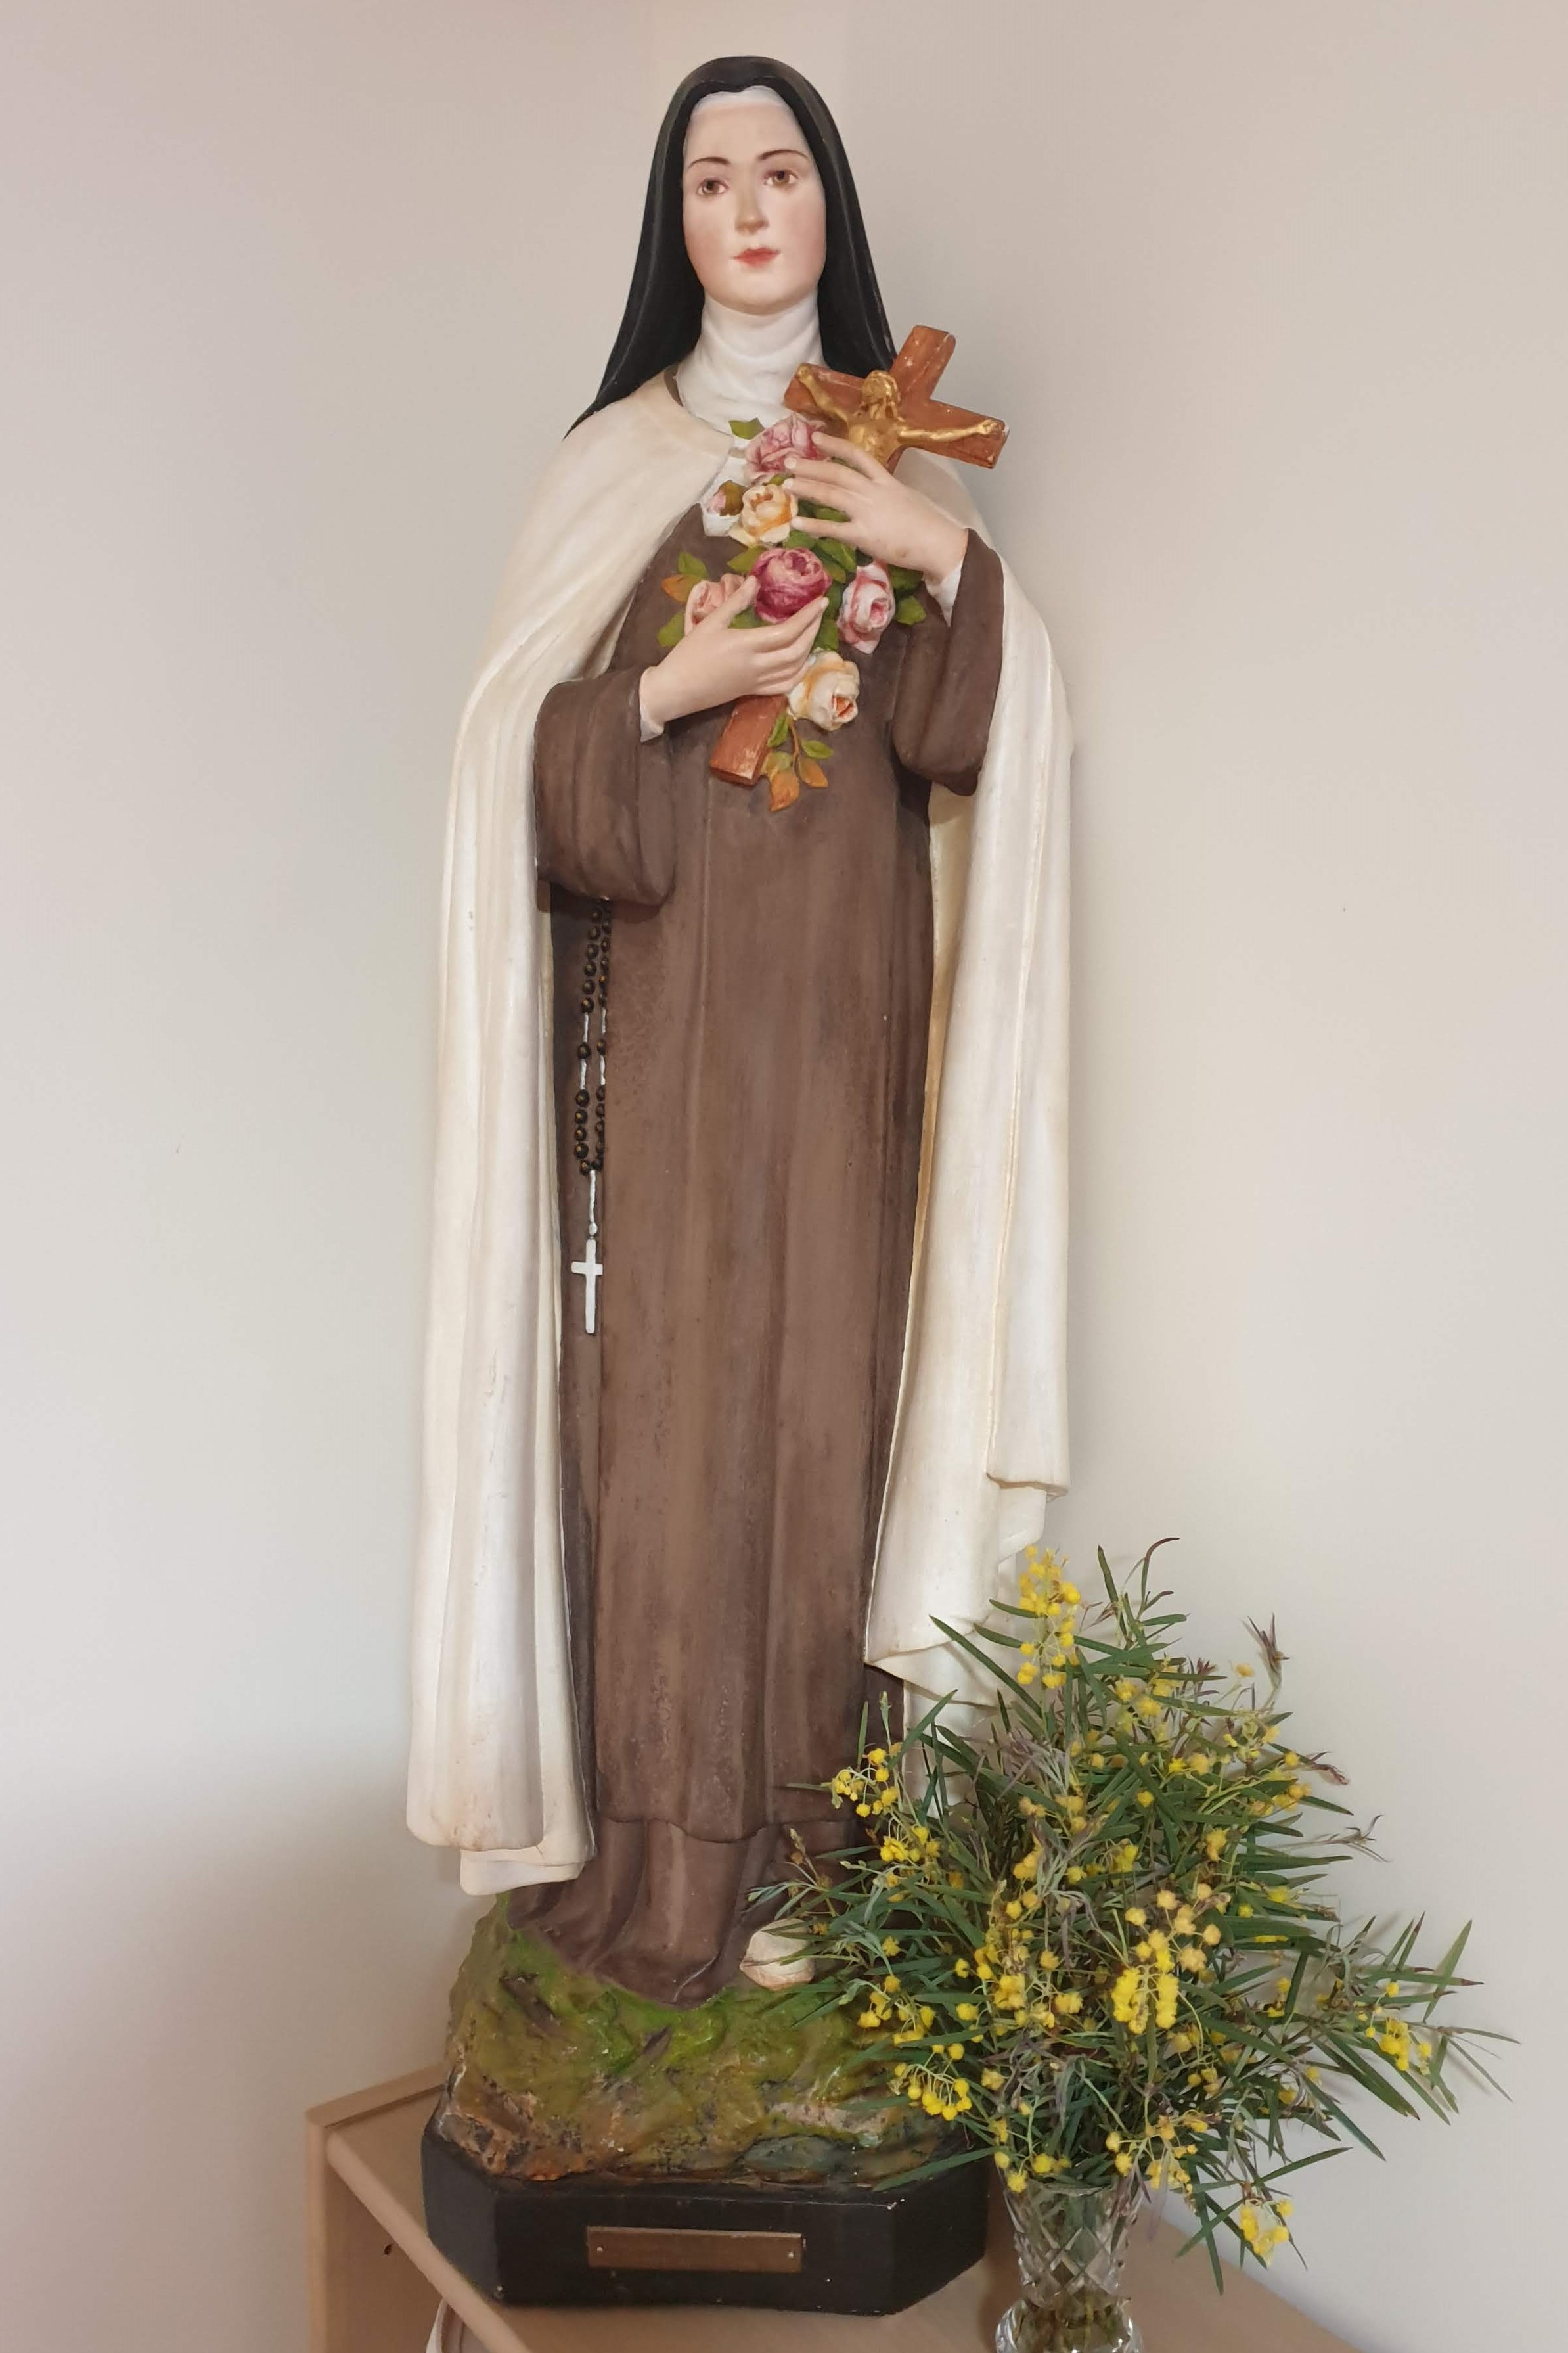 This statue of St Therese of the Child Jesus is in the Nuns' Chapel